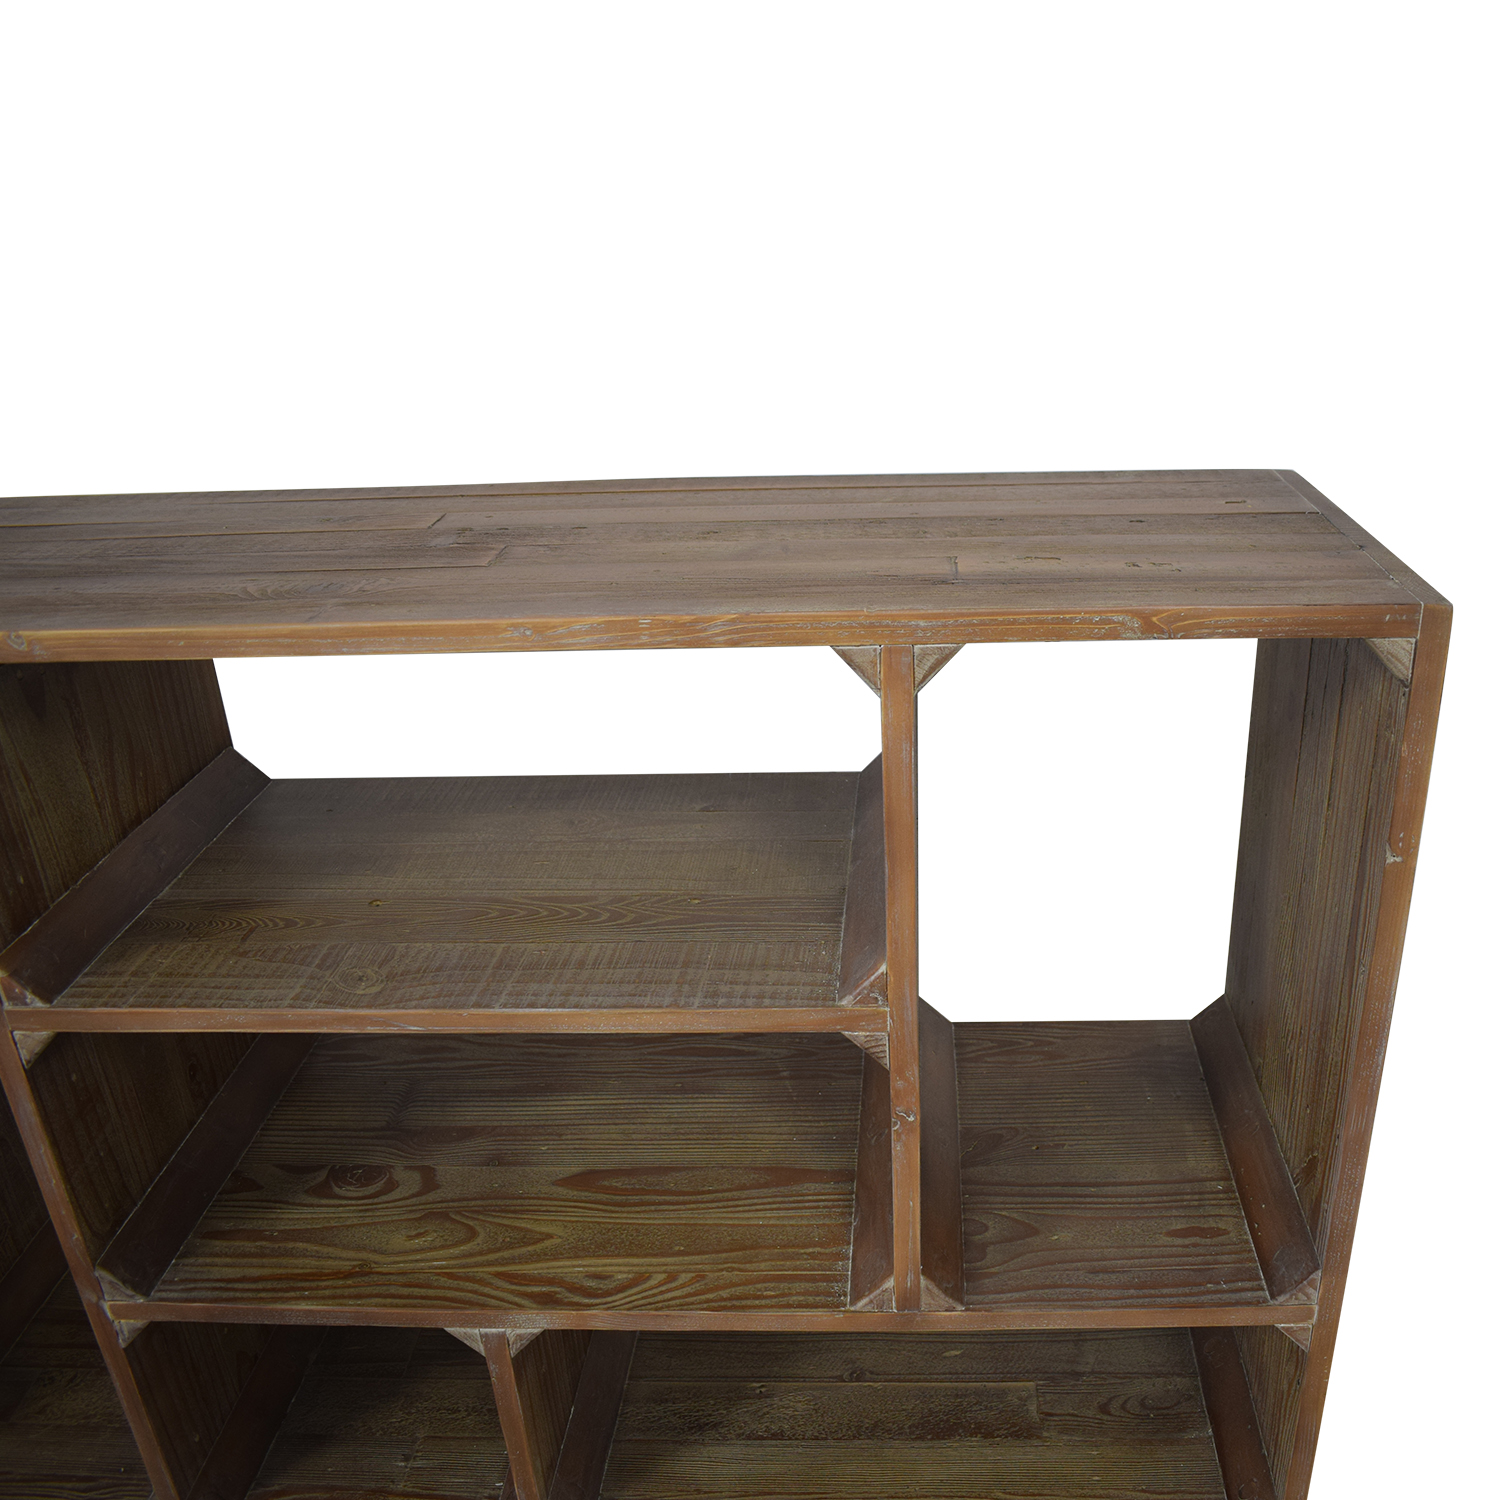 Restoration Hardware Reclaimed Pine Low Bookcase / Bookcases & Shelving